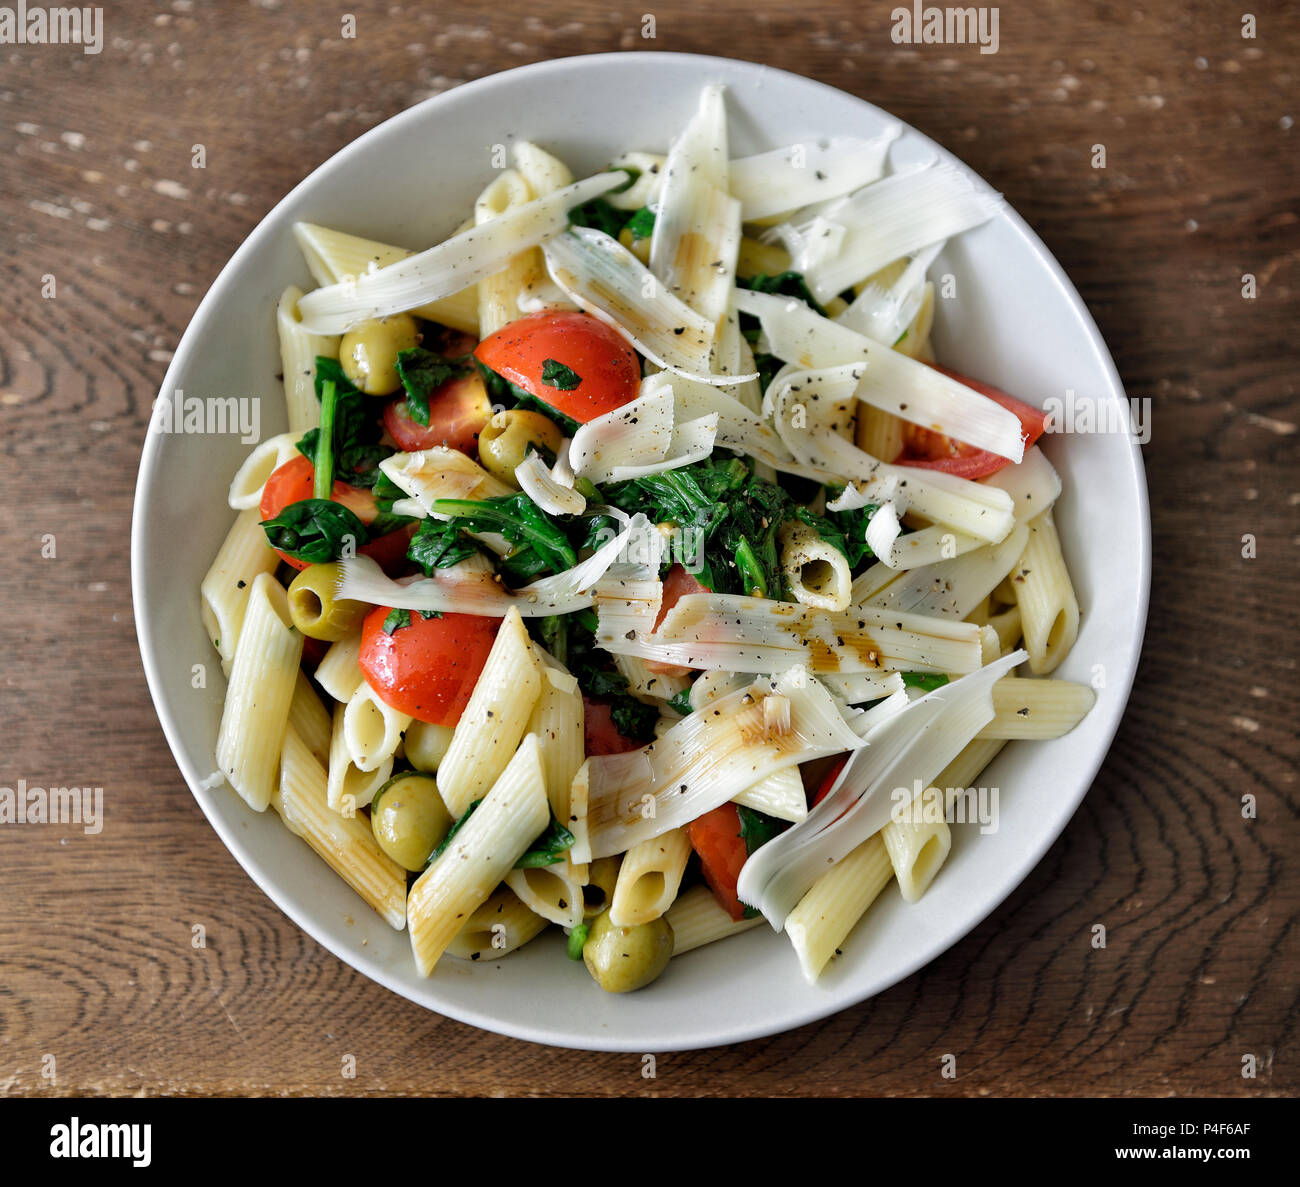 Vegan Pasta Meal - Stock Image